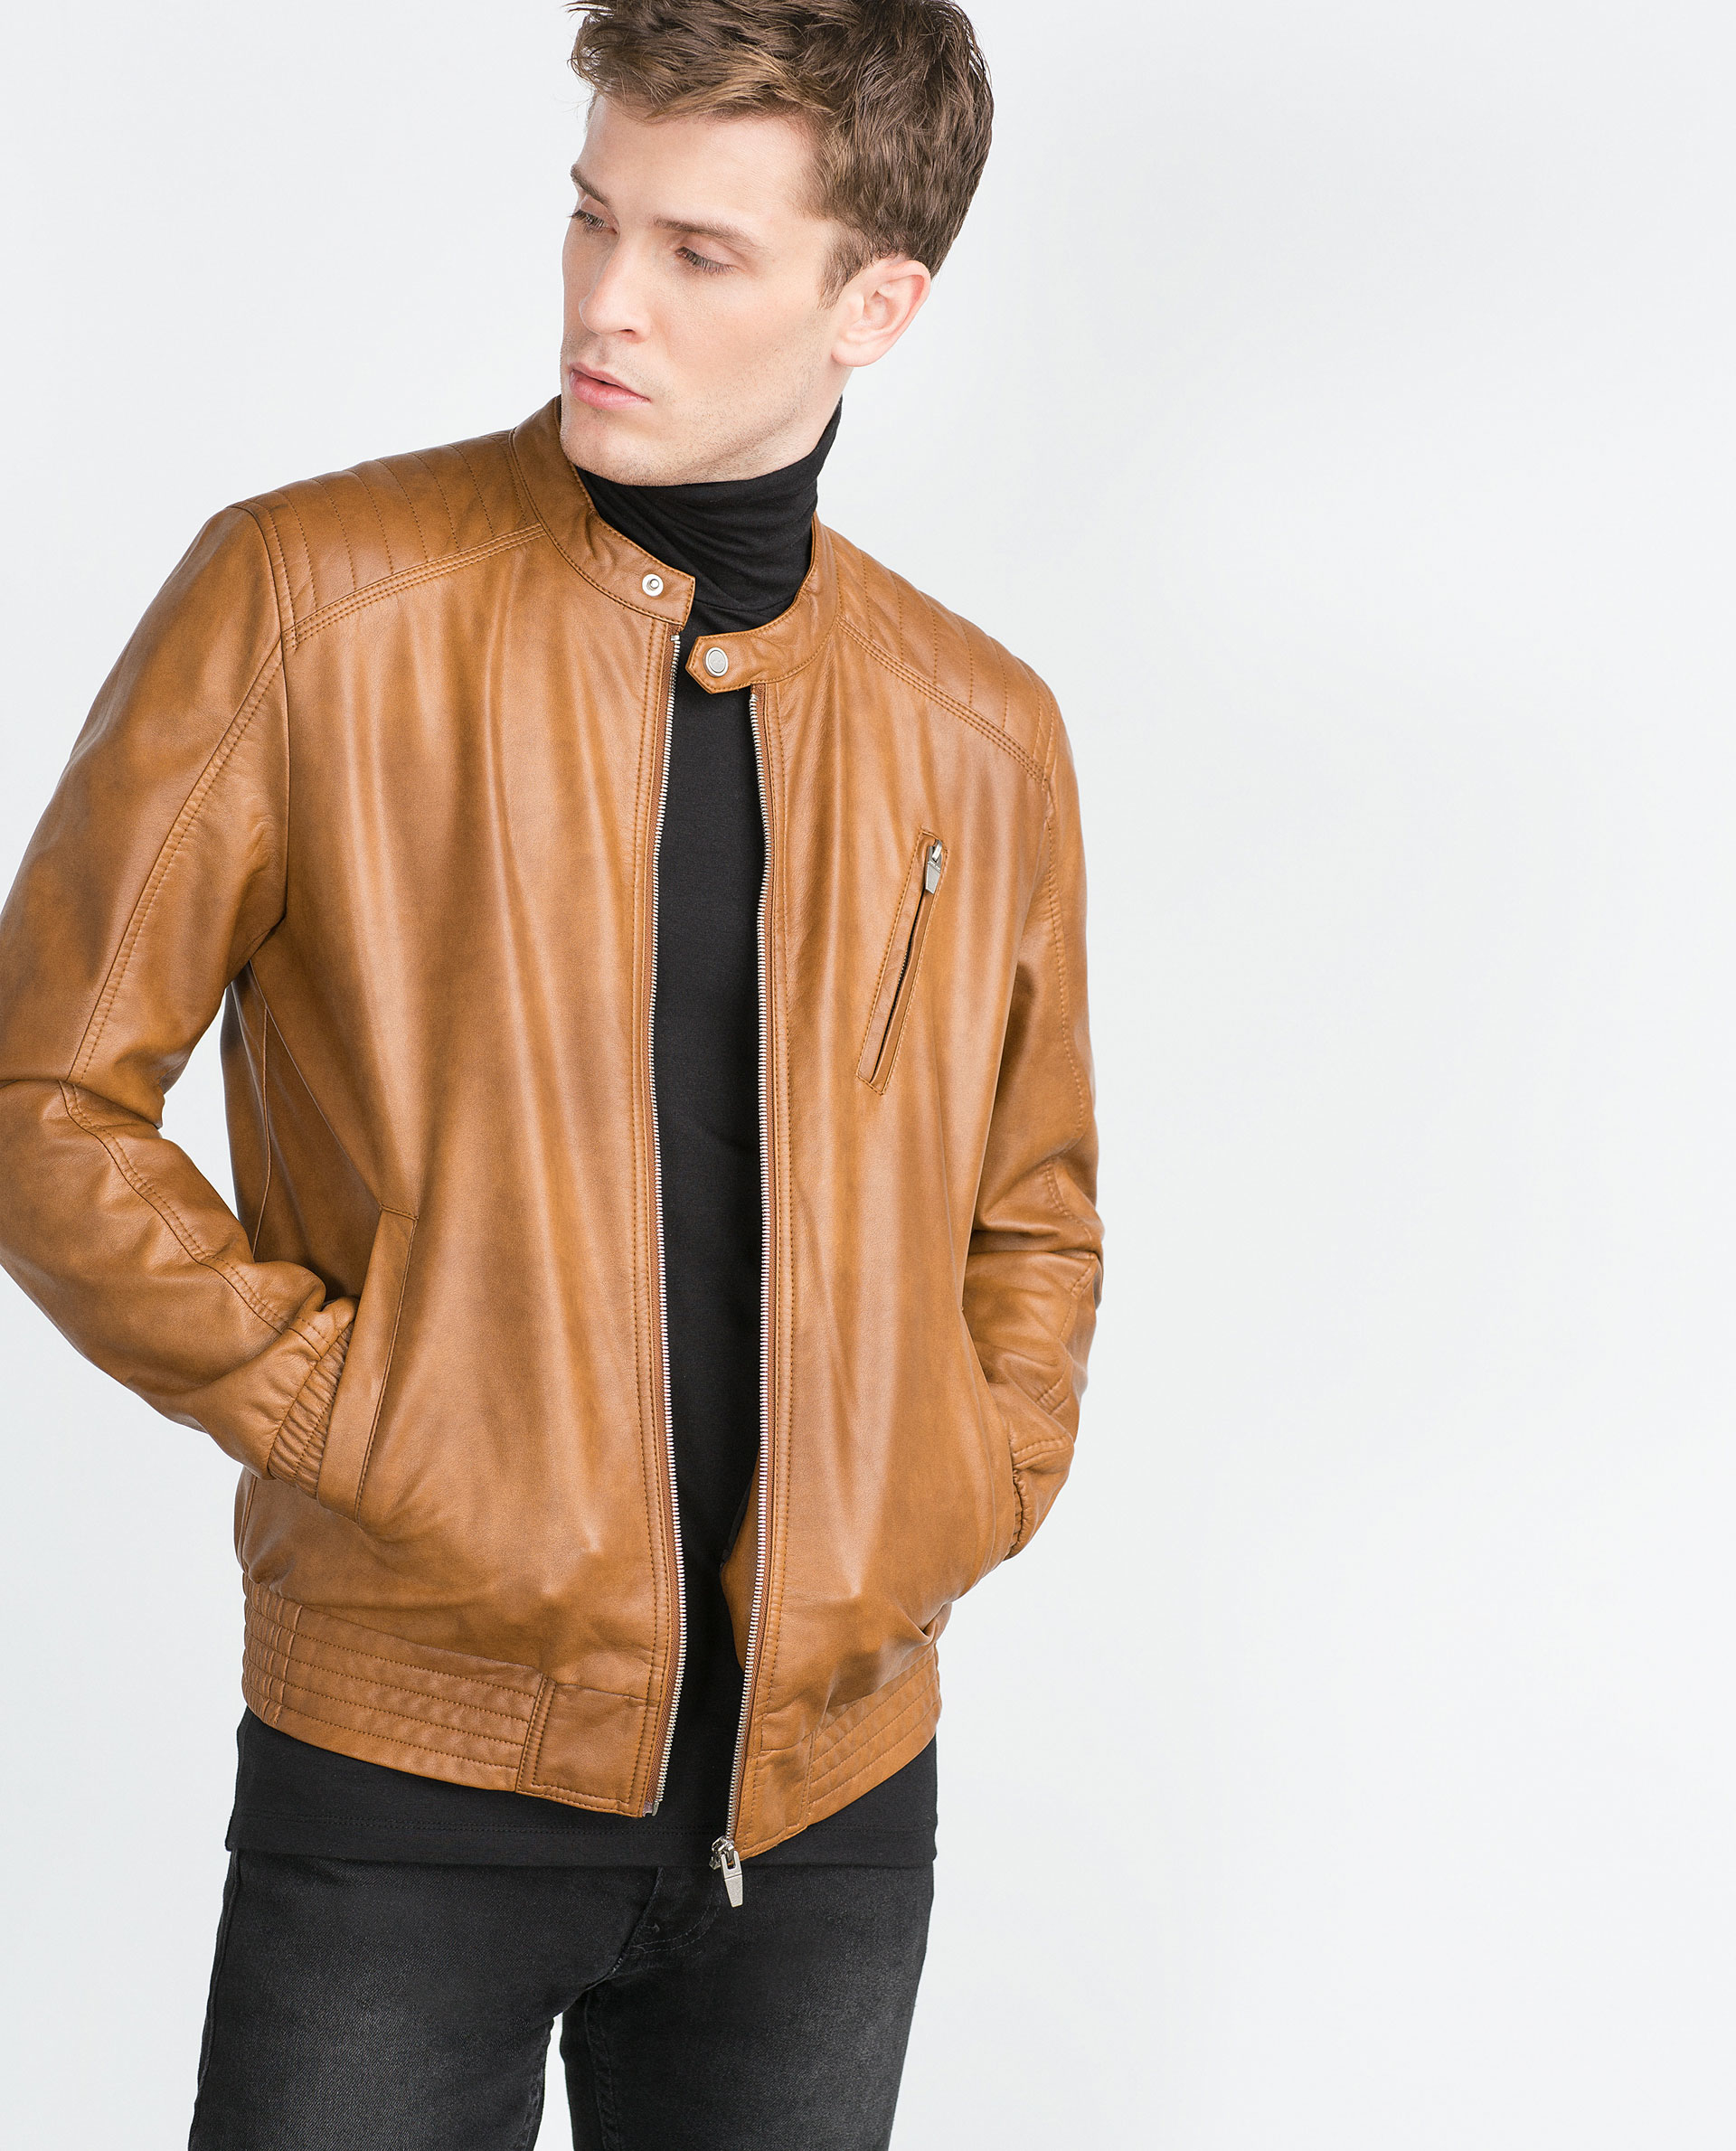 Tan Leather Jacket Photo Album - Reikian